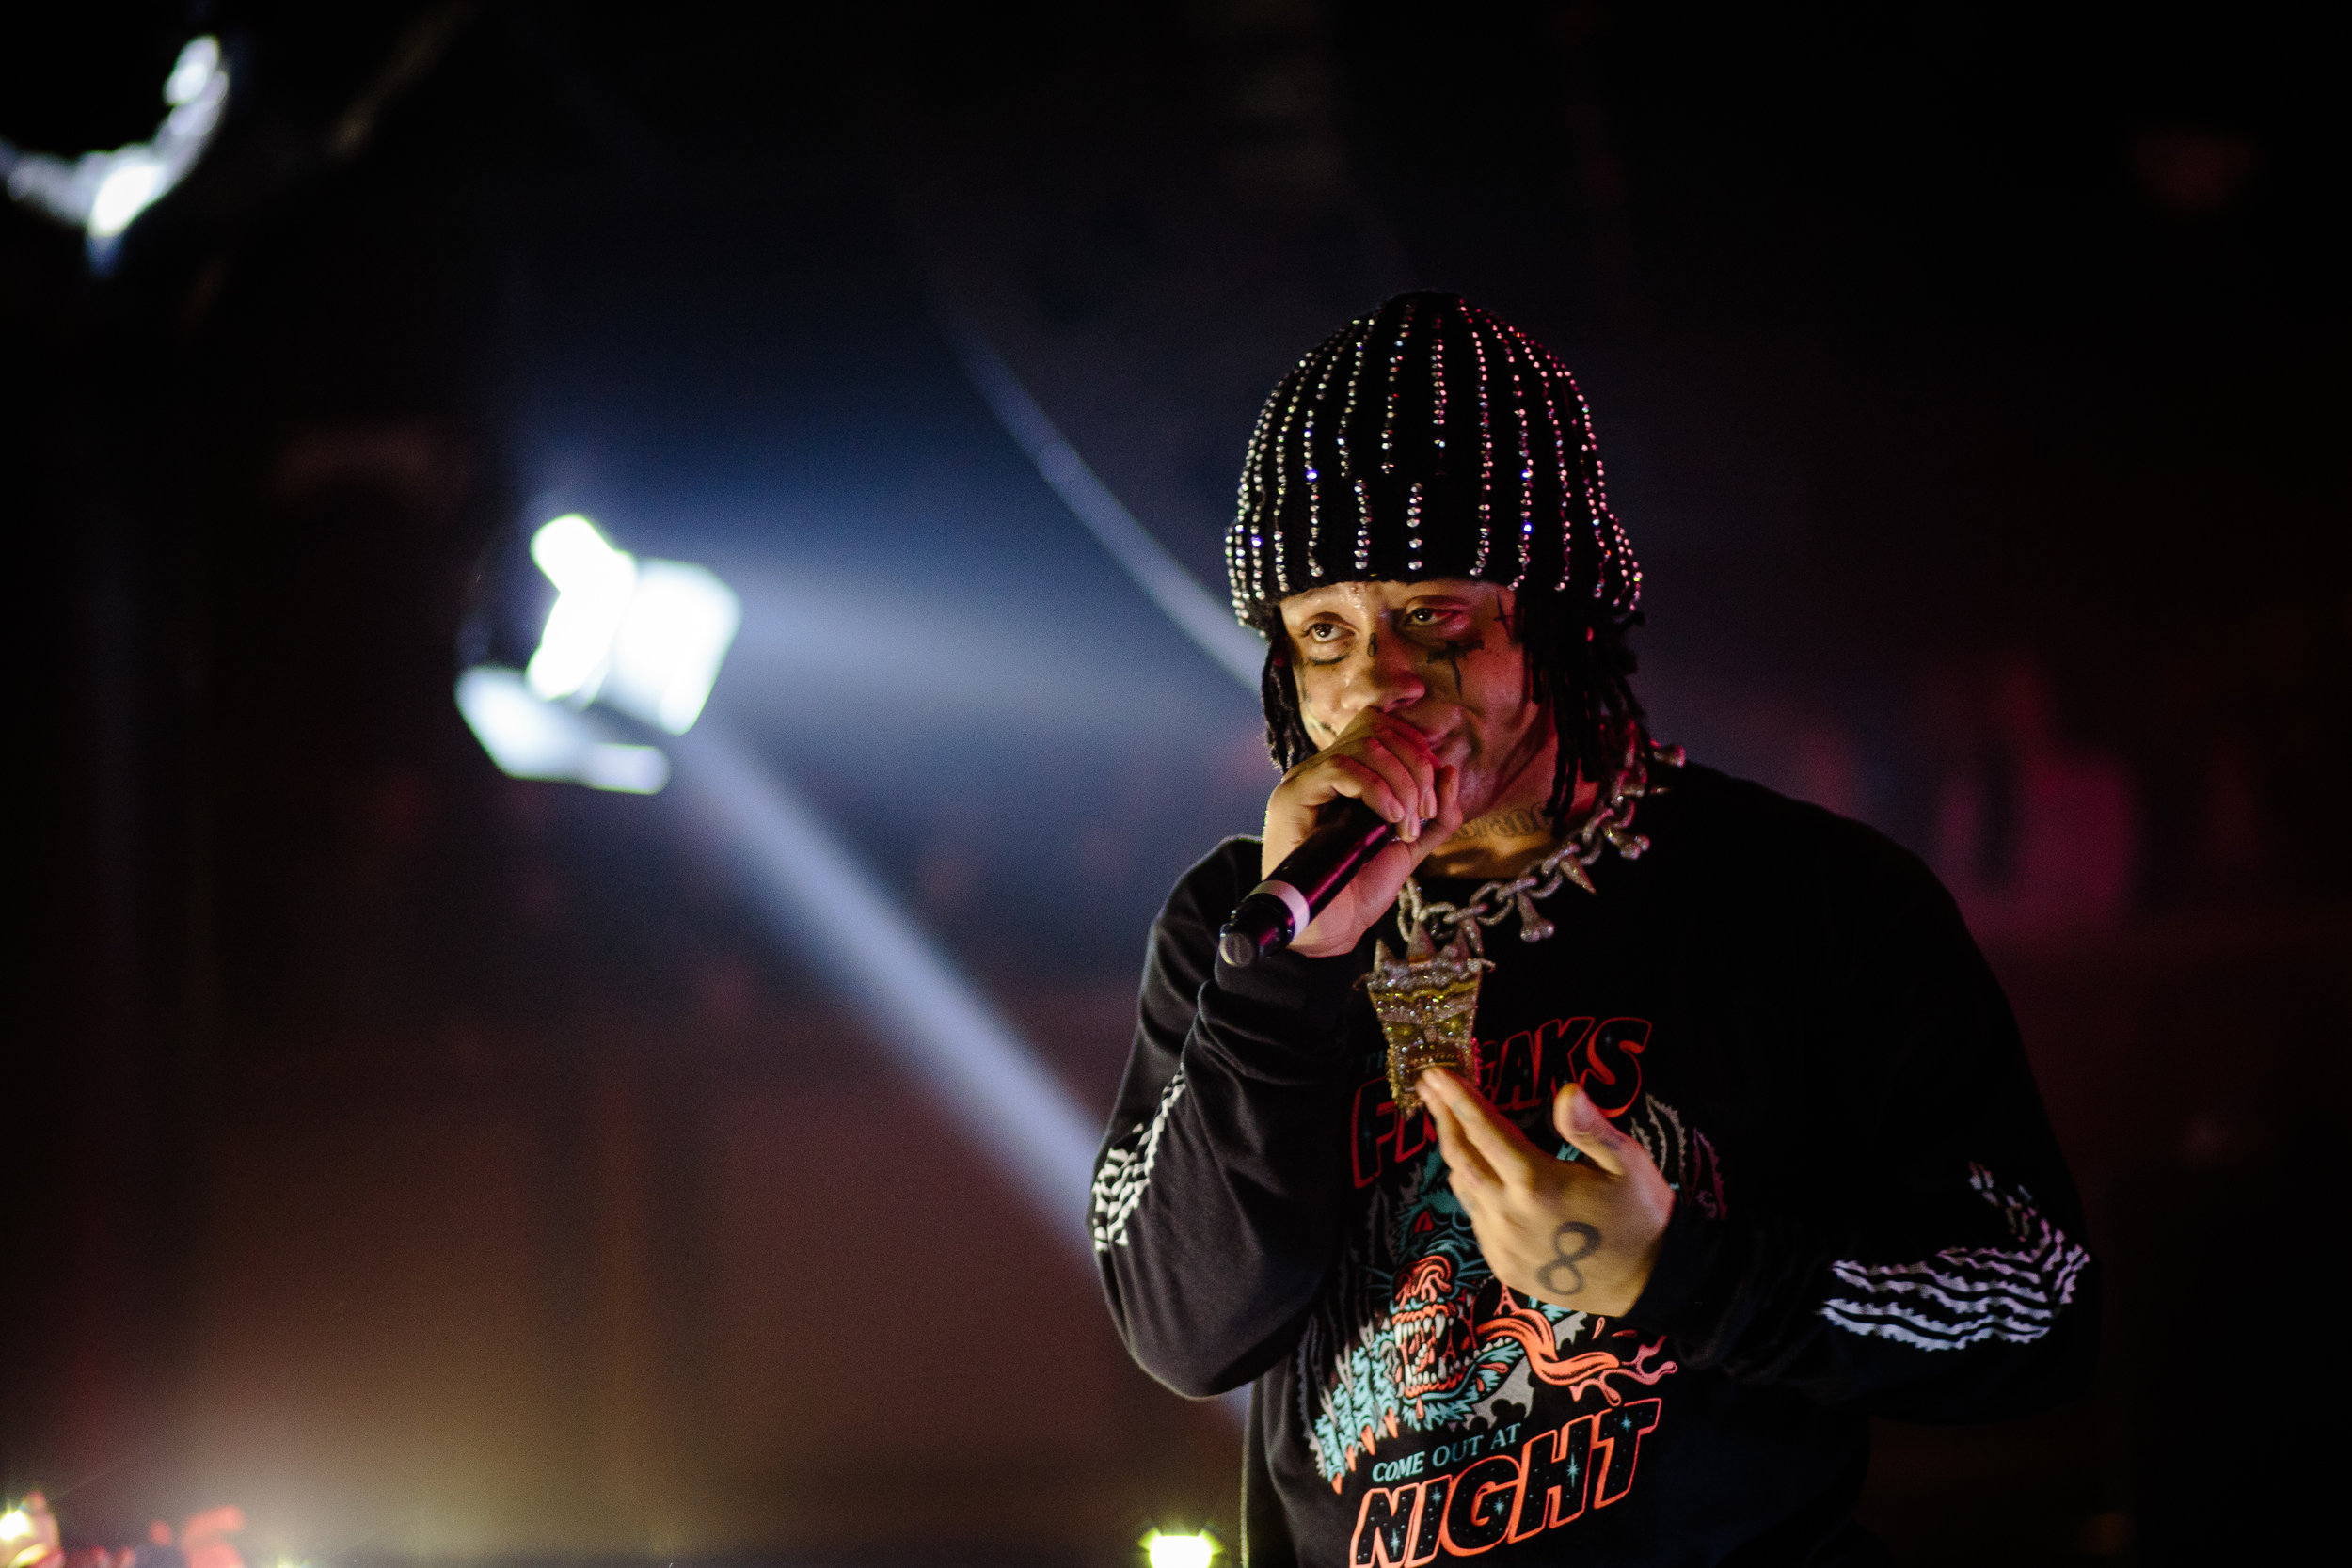 trippie redd concert boston